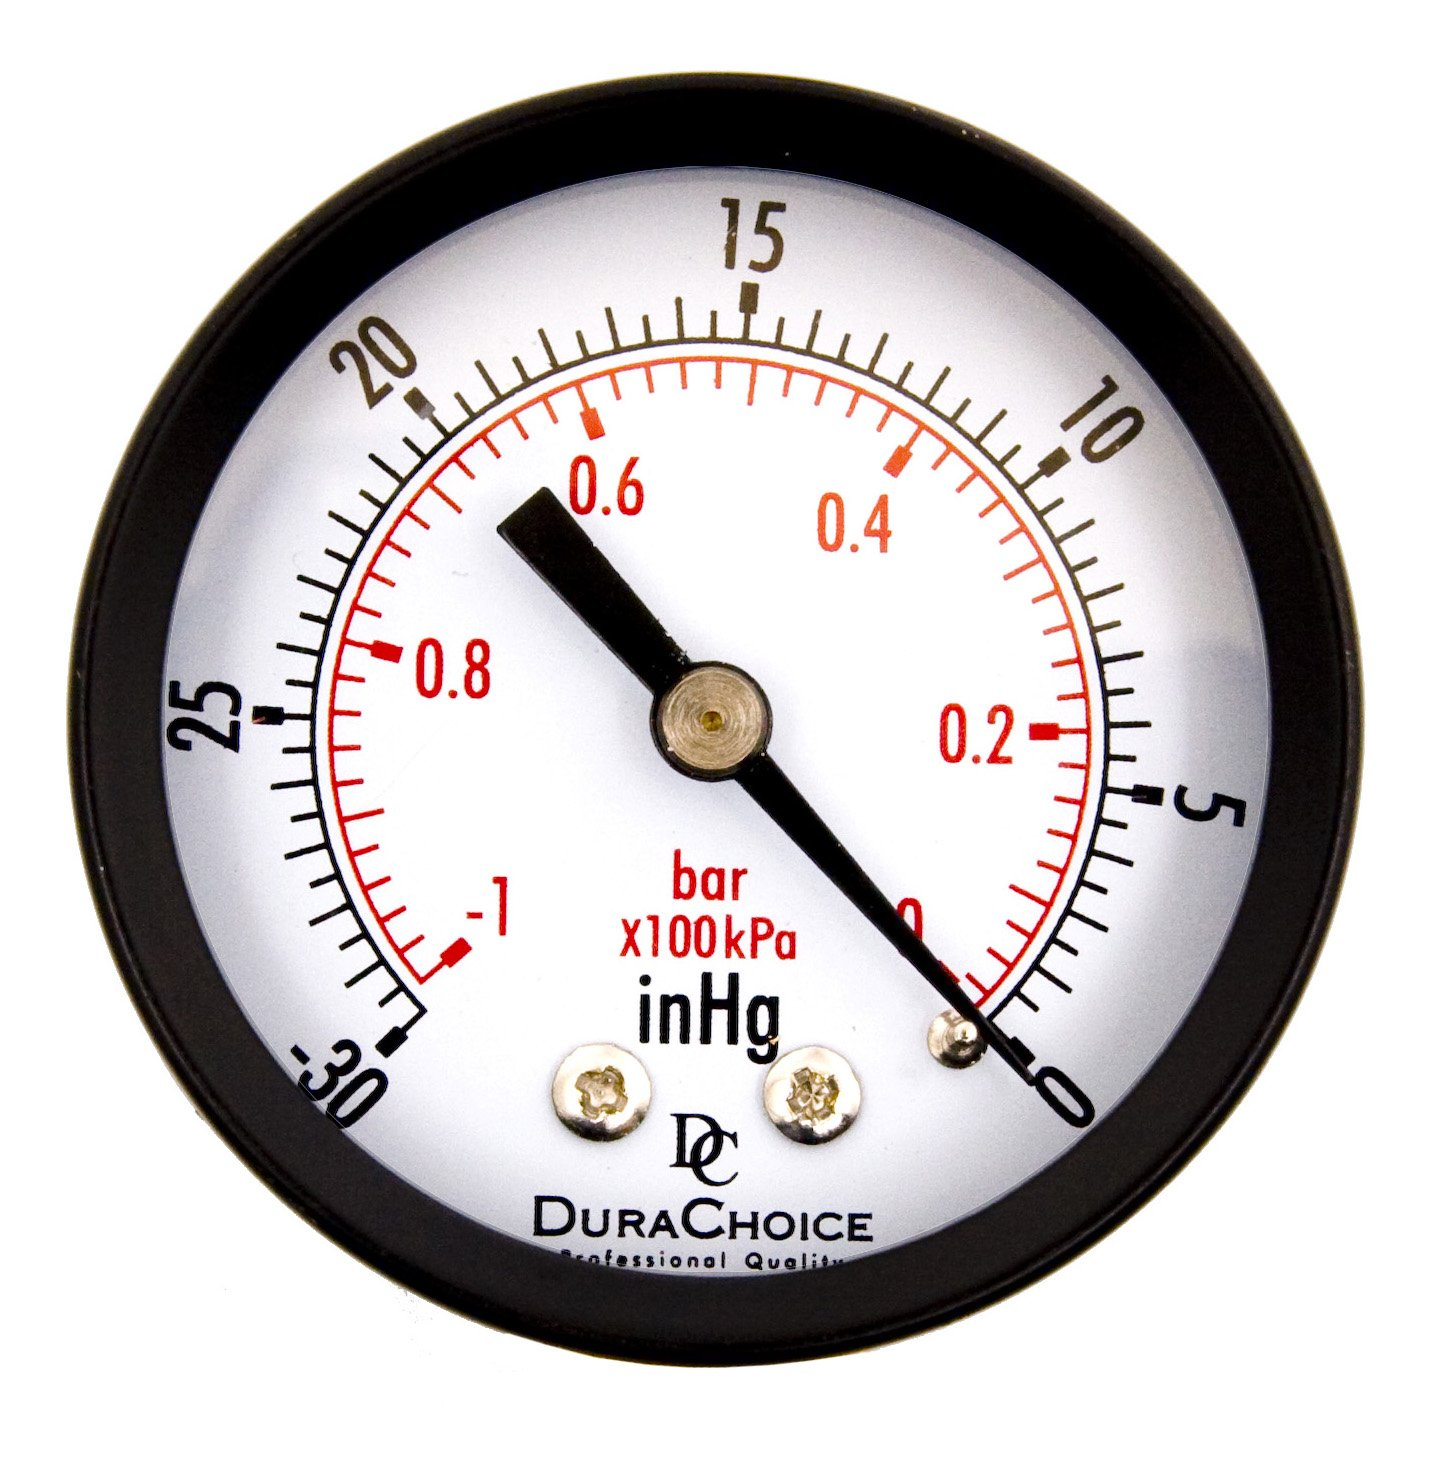 "DuraChoice 2"" Dial Utility Vacuum Pressure Gauge for Air Compressor Water Oil Gas, 1/4"" NPT Center Back Mount, Black Steel Case, -30HG/0PSI"